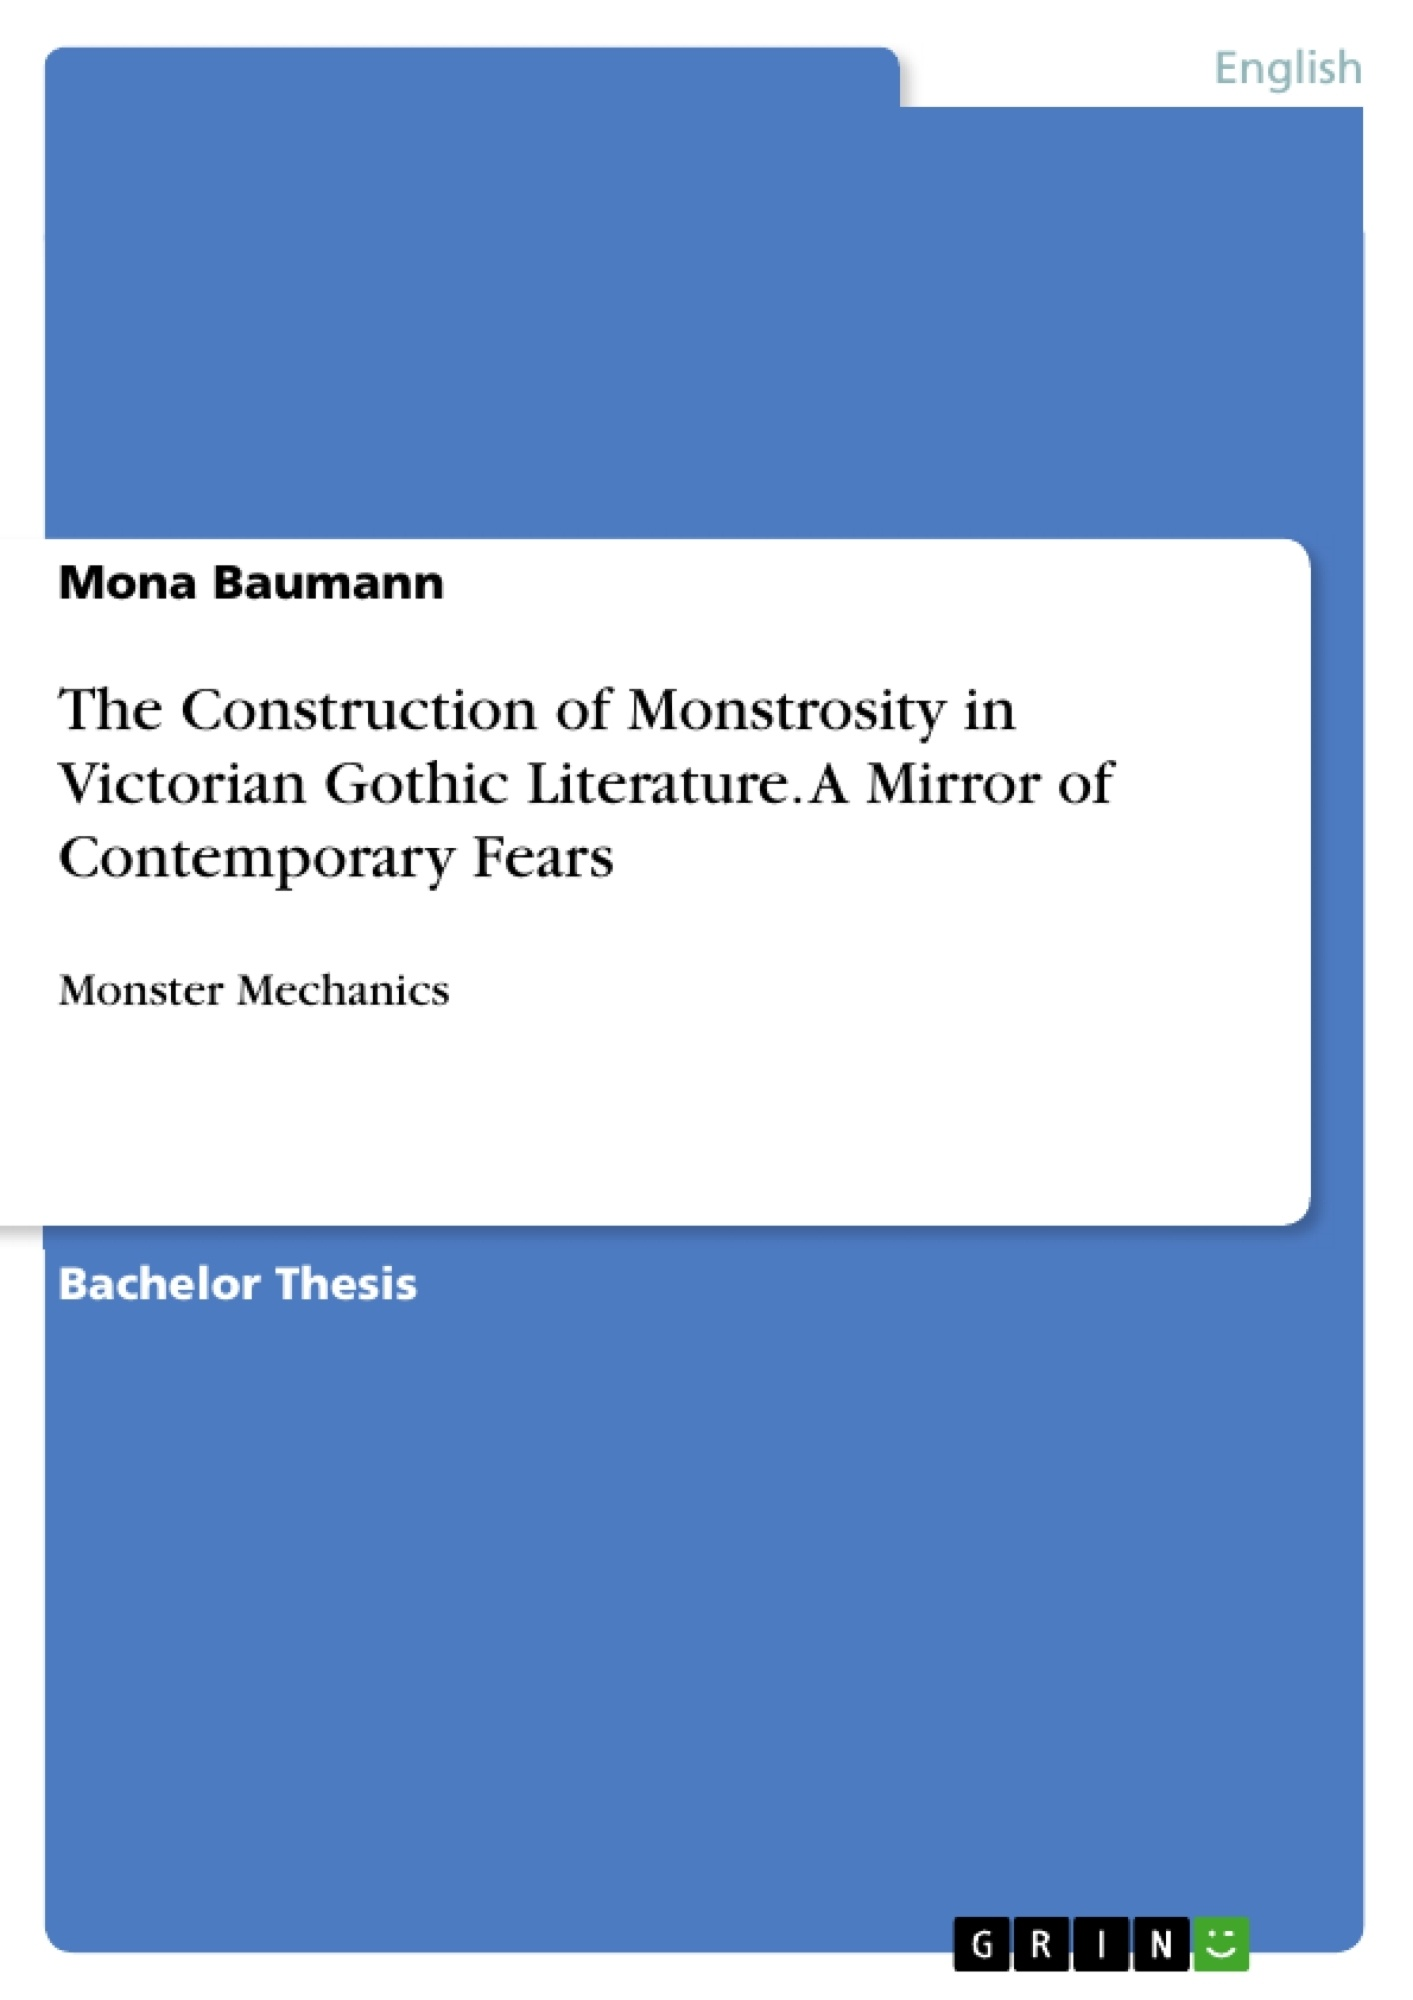 Title: The Construction of Monstrosity in Victorian Gothic Literature. A Mirror of Contemporary Fears